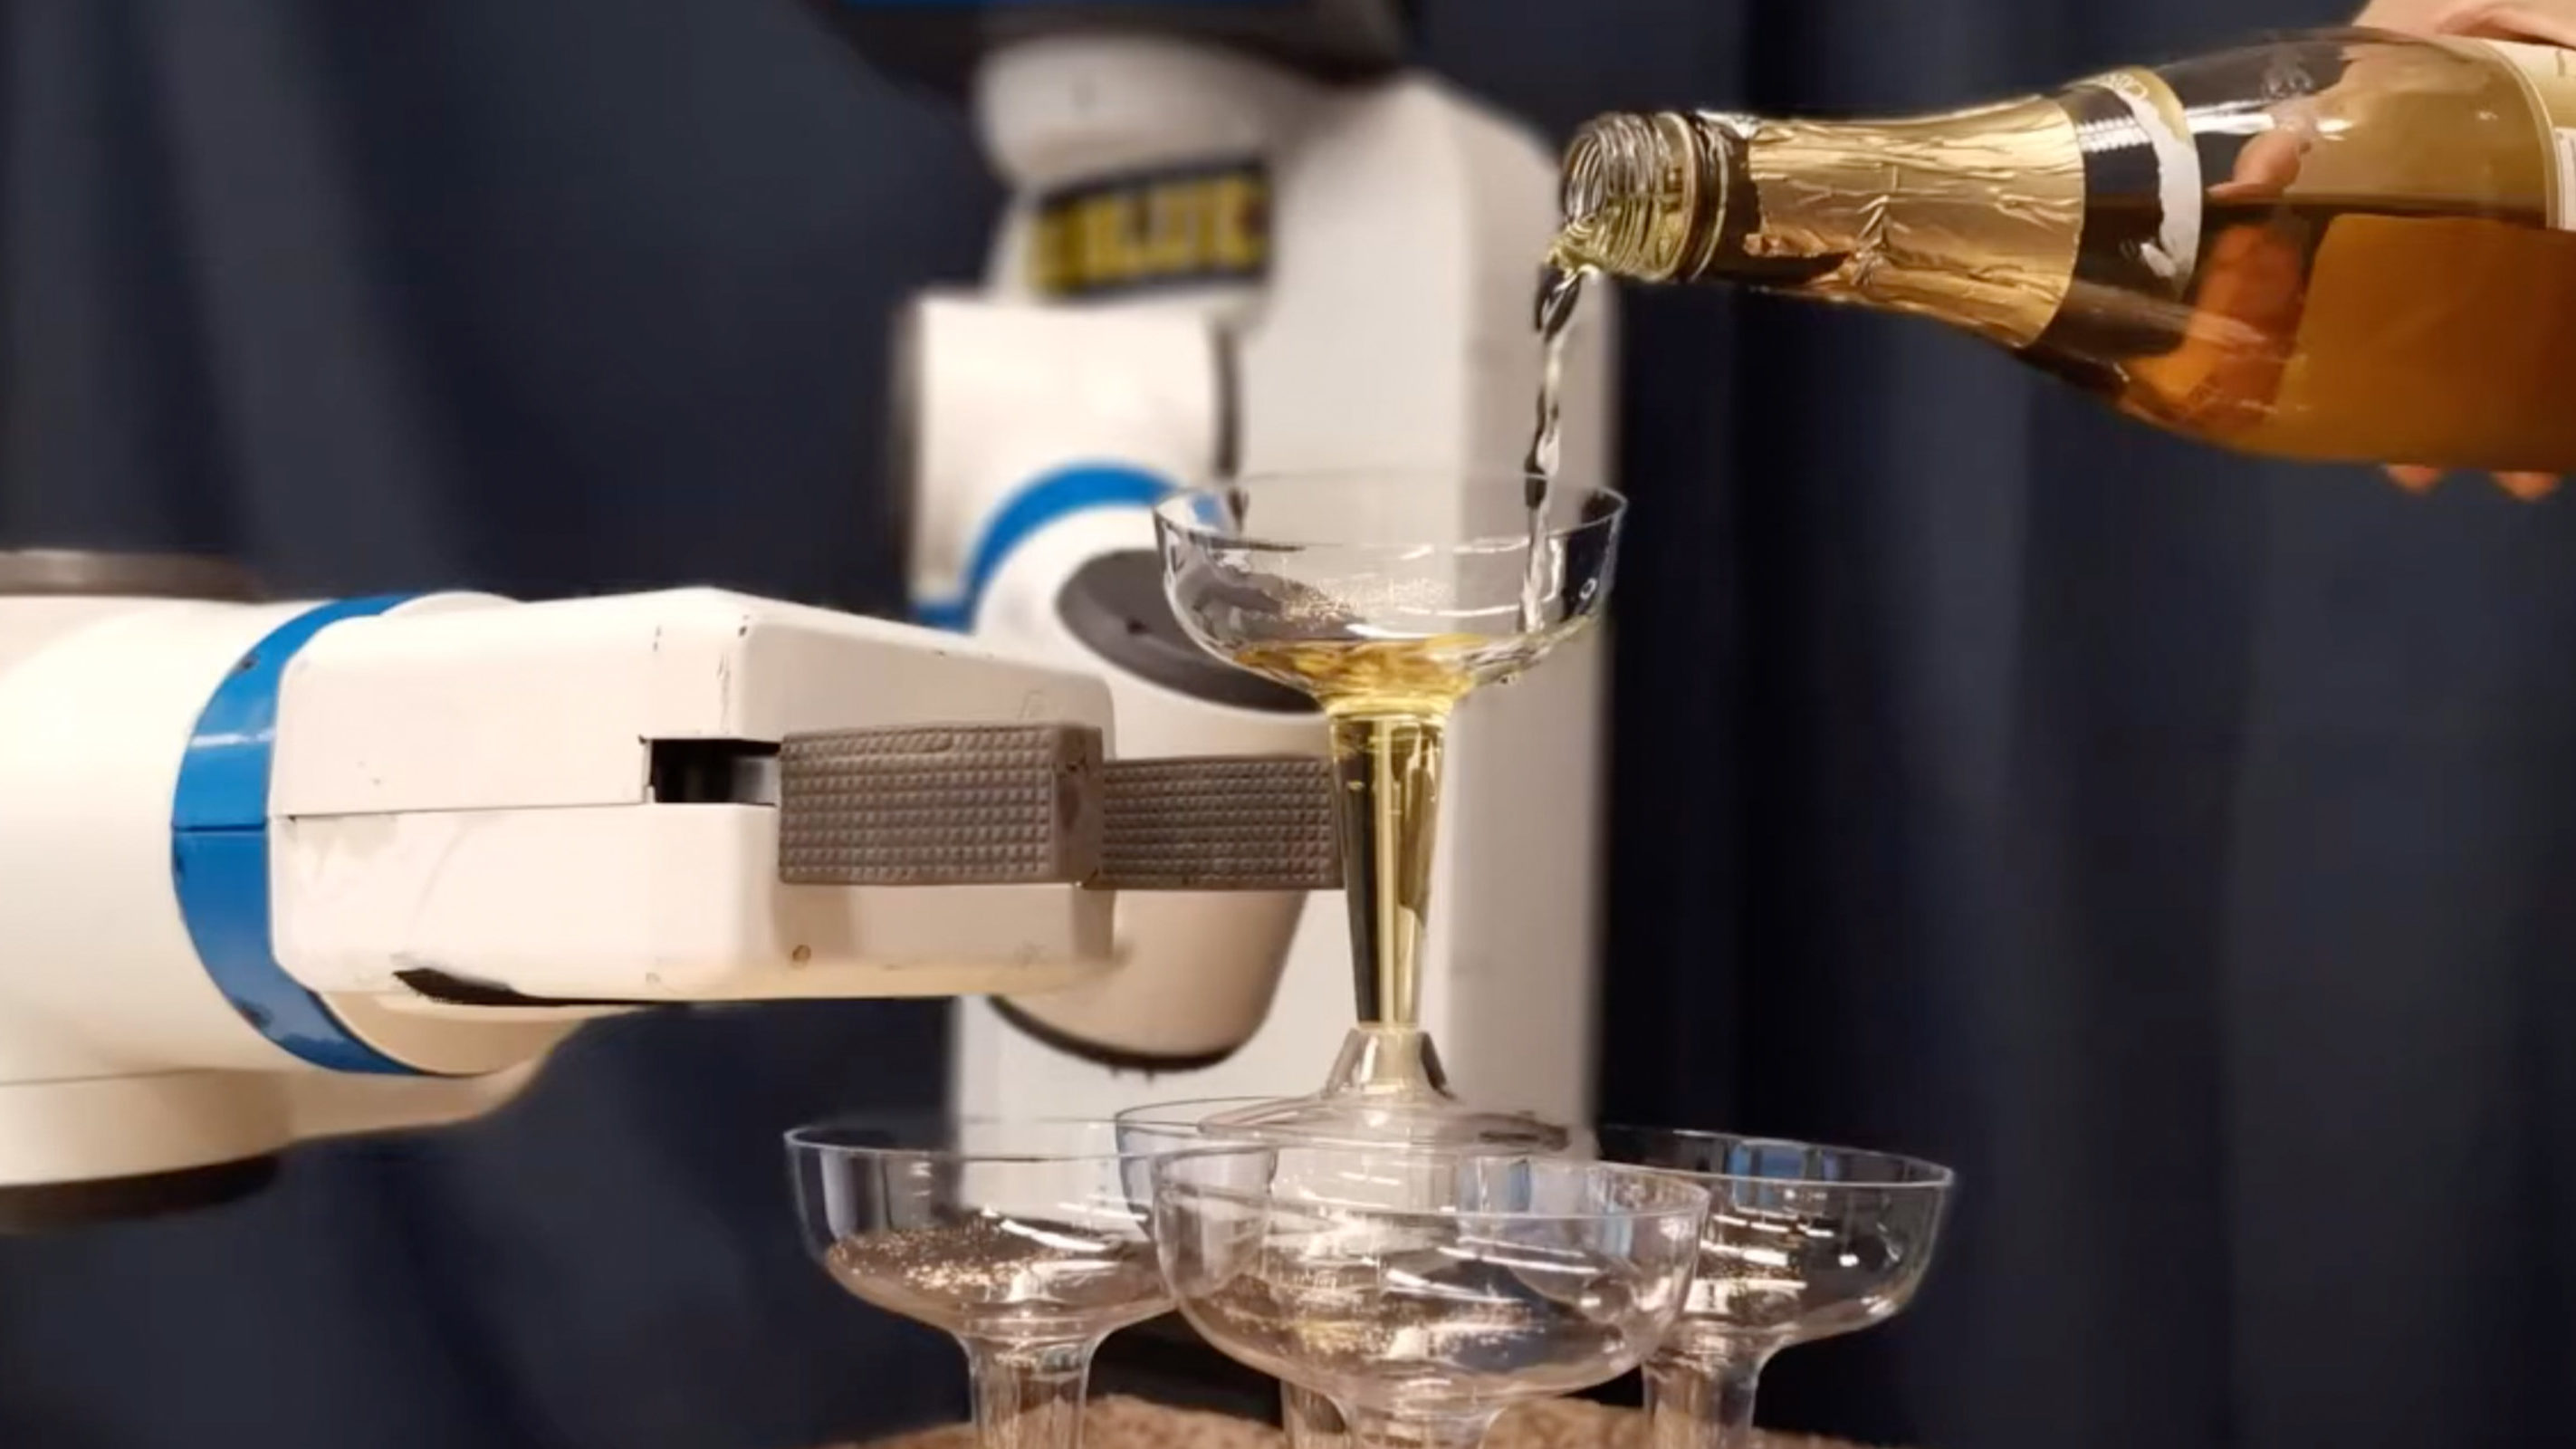 Robot building a tower of champagne glasses